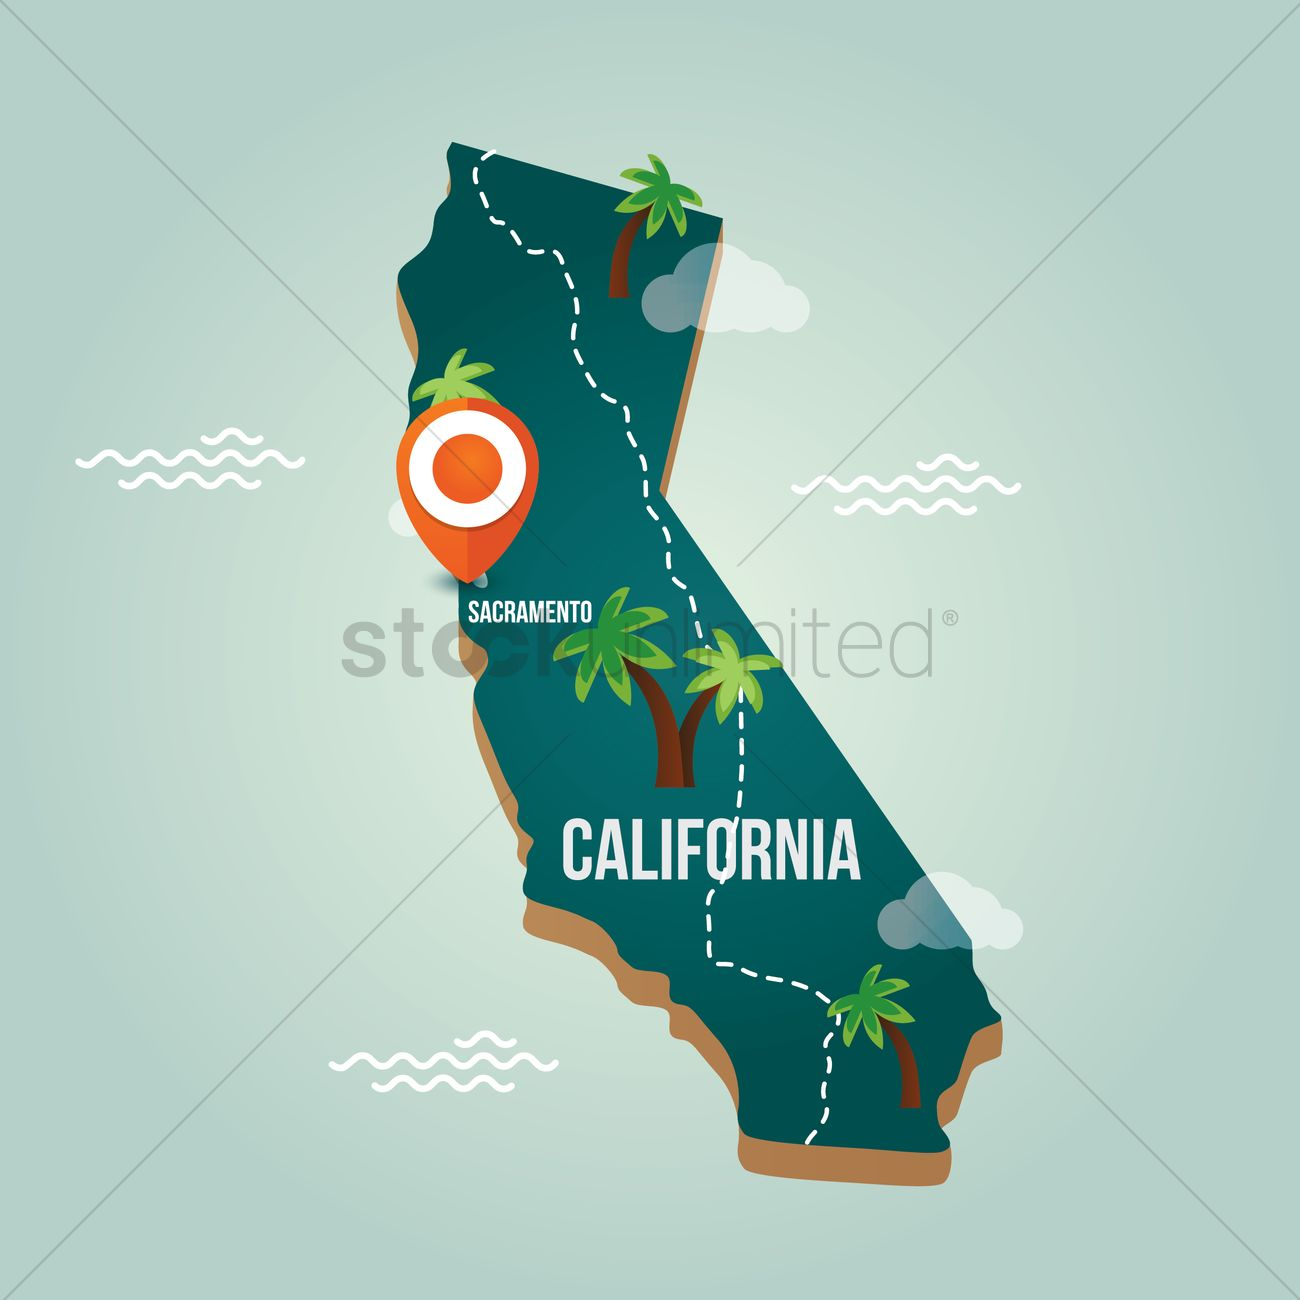 California map with capital city Vector Image 1536591 StockUnlimited